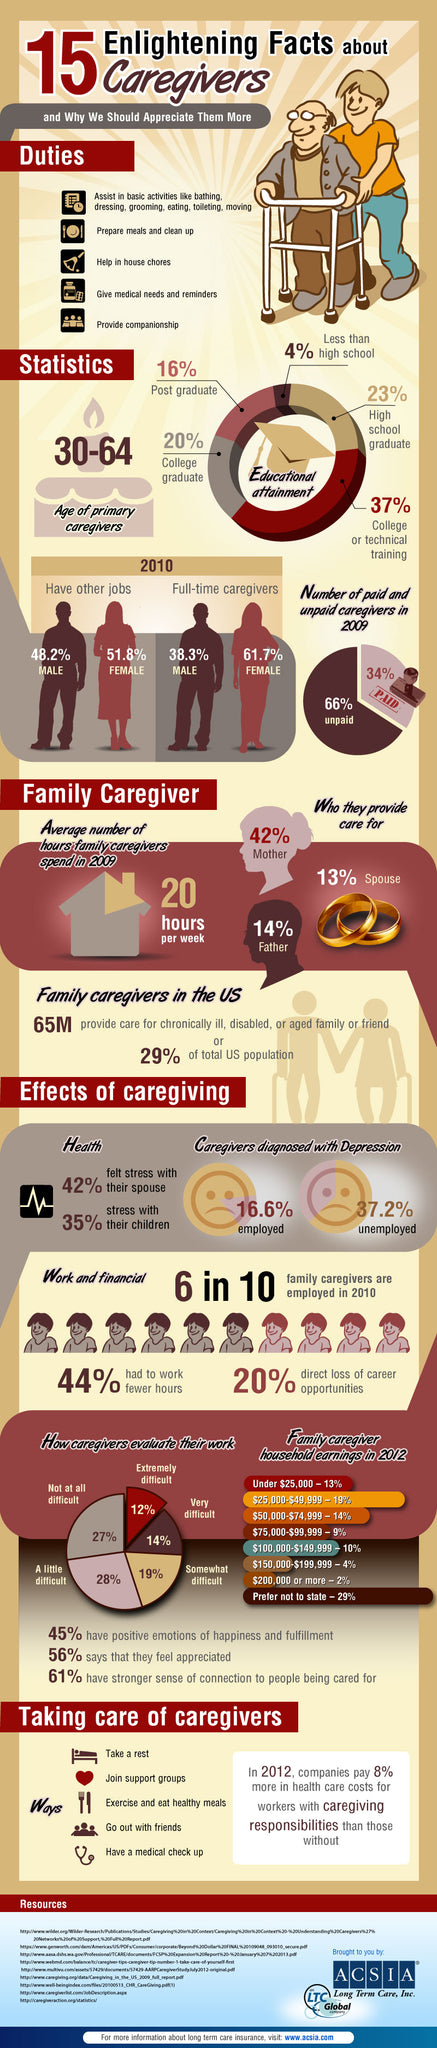 Top 15 Enlightening Facts about Caregivers